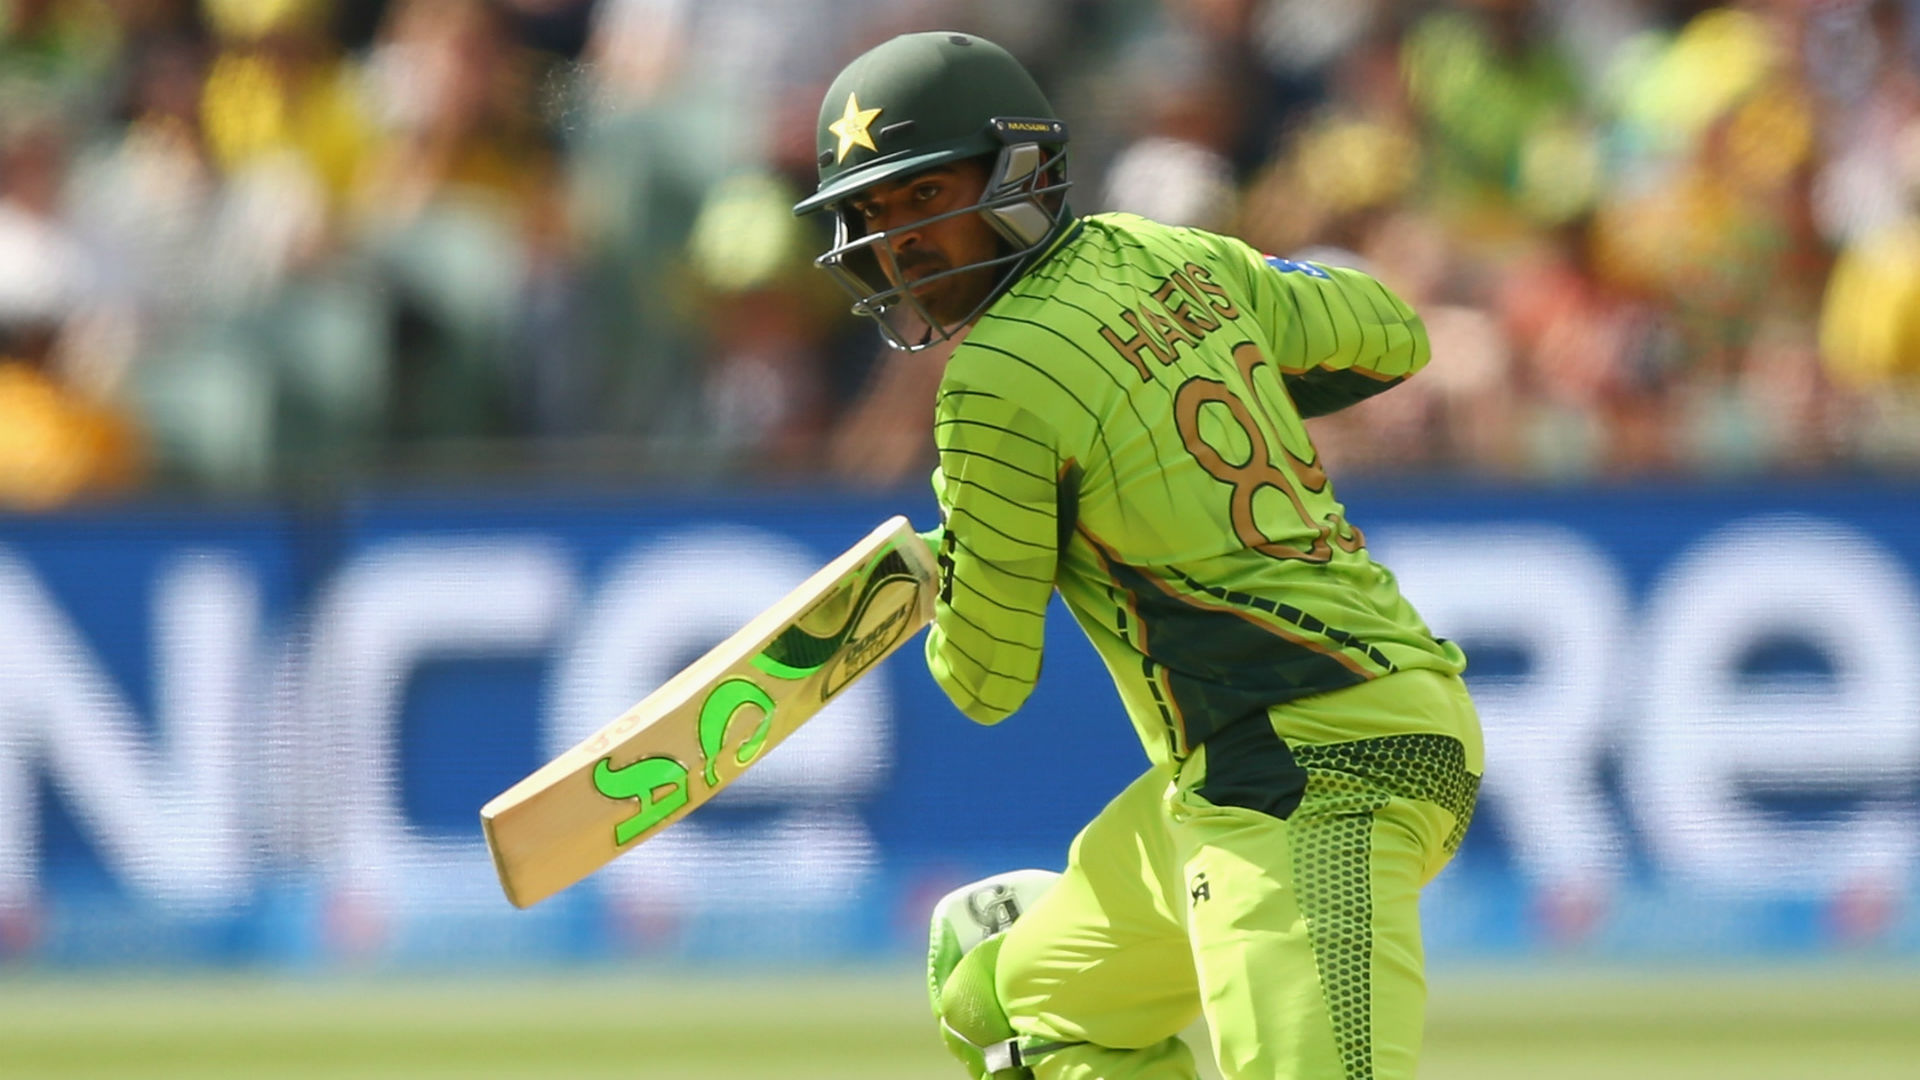 Pakistan Select Sohail As Umar S Replacement For Champions